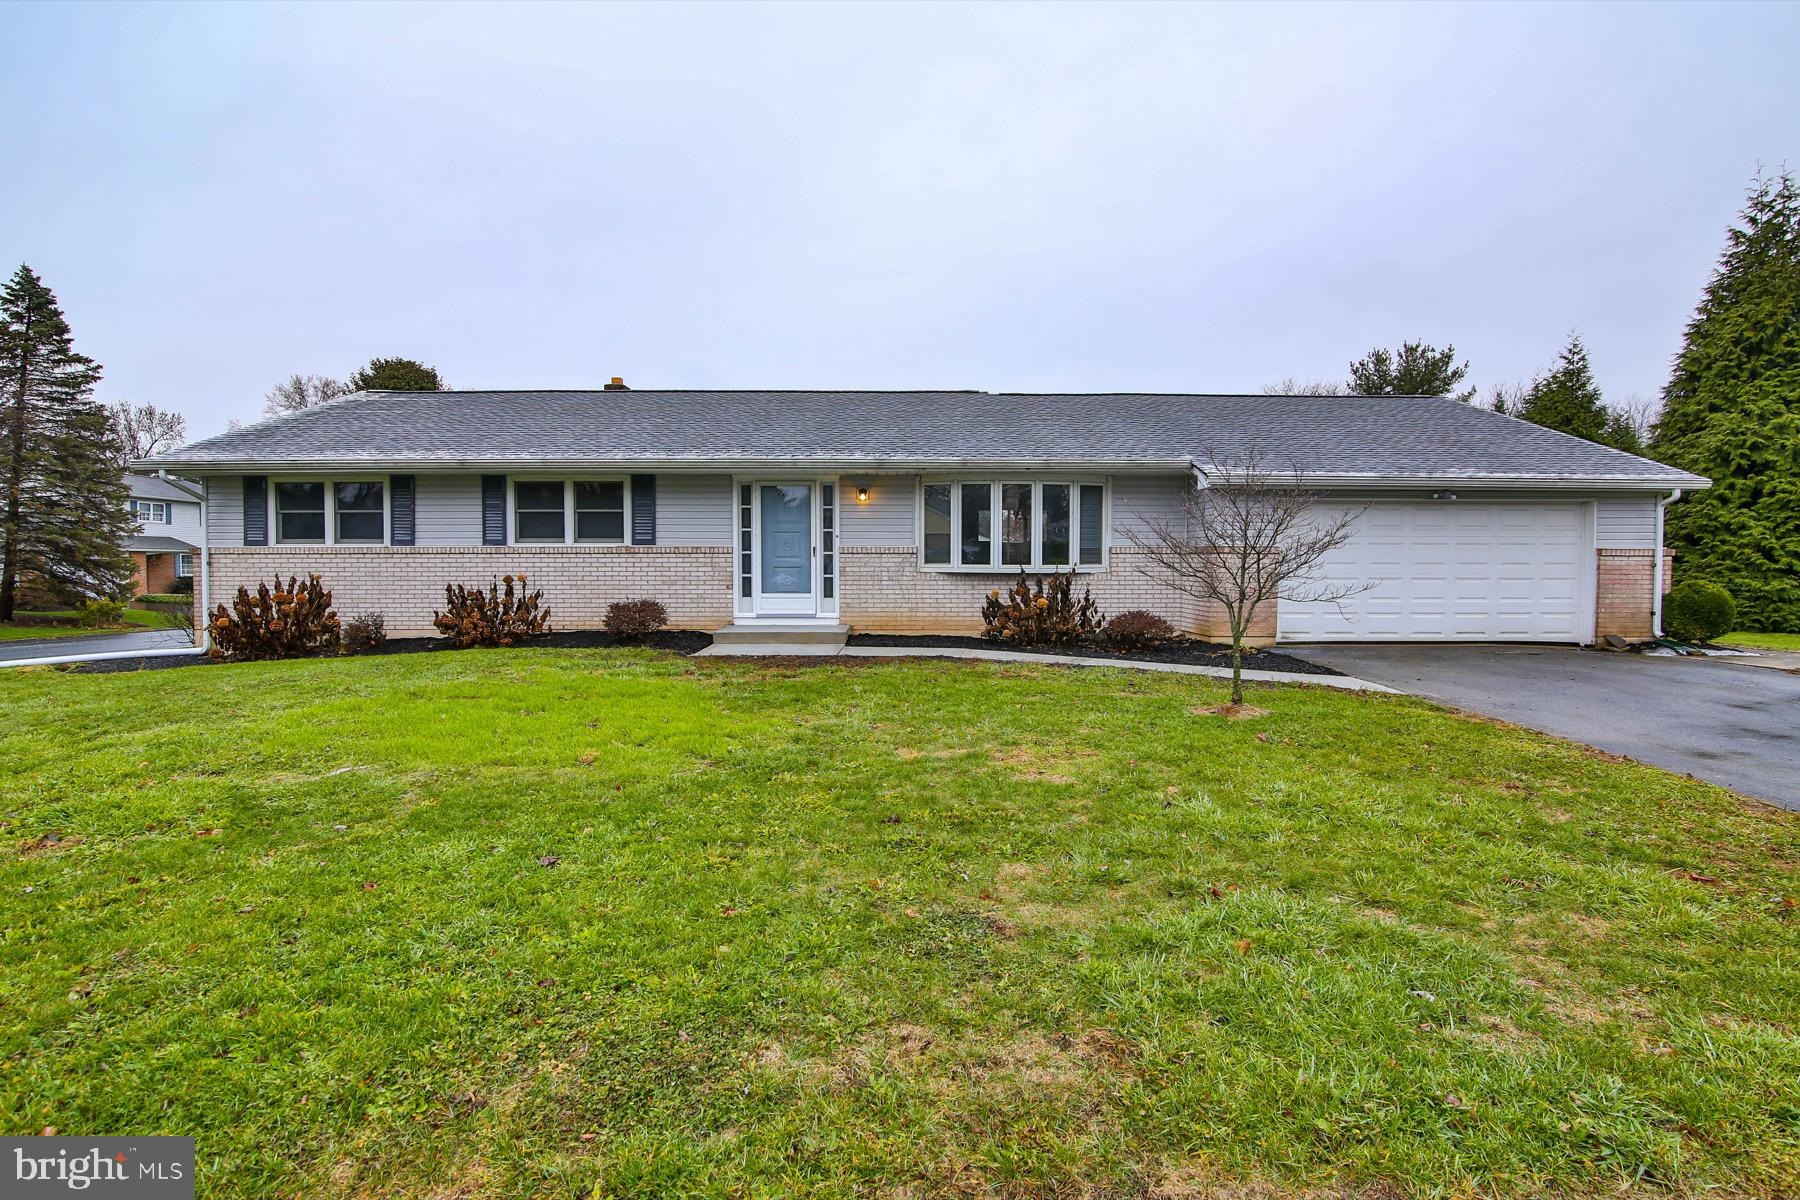 7185 LINDEN ROAD, MACUNGIE, PA 18062